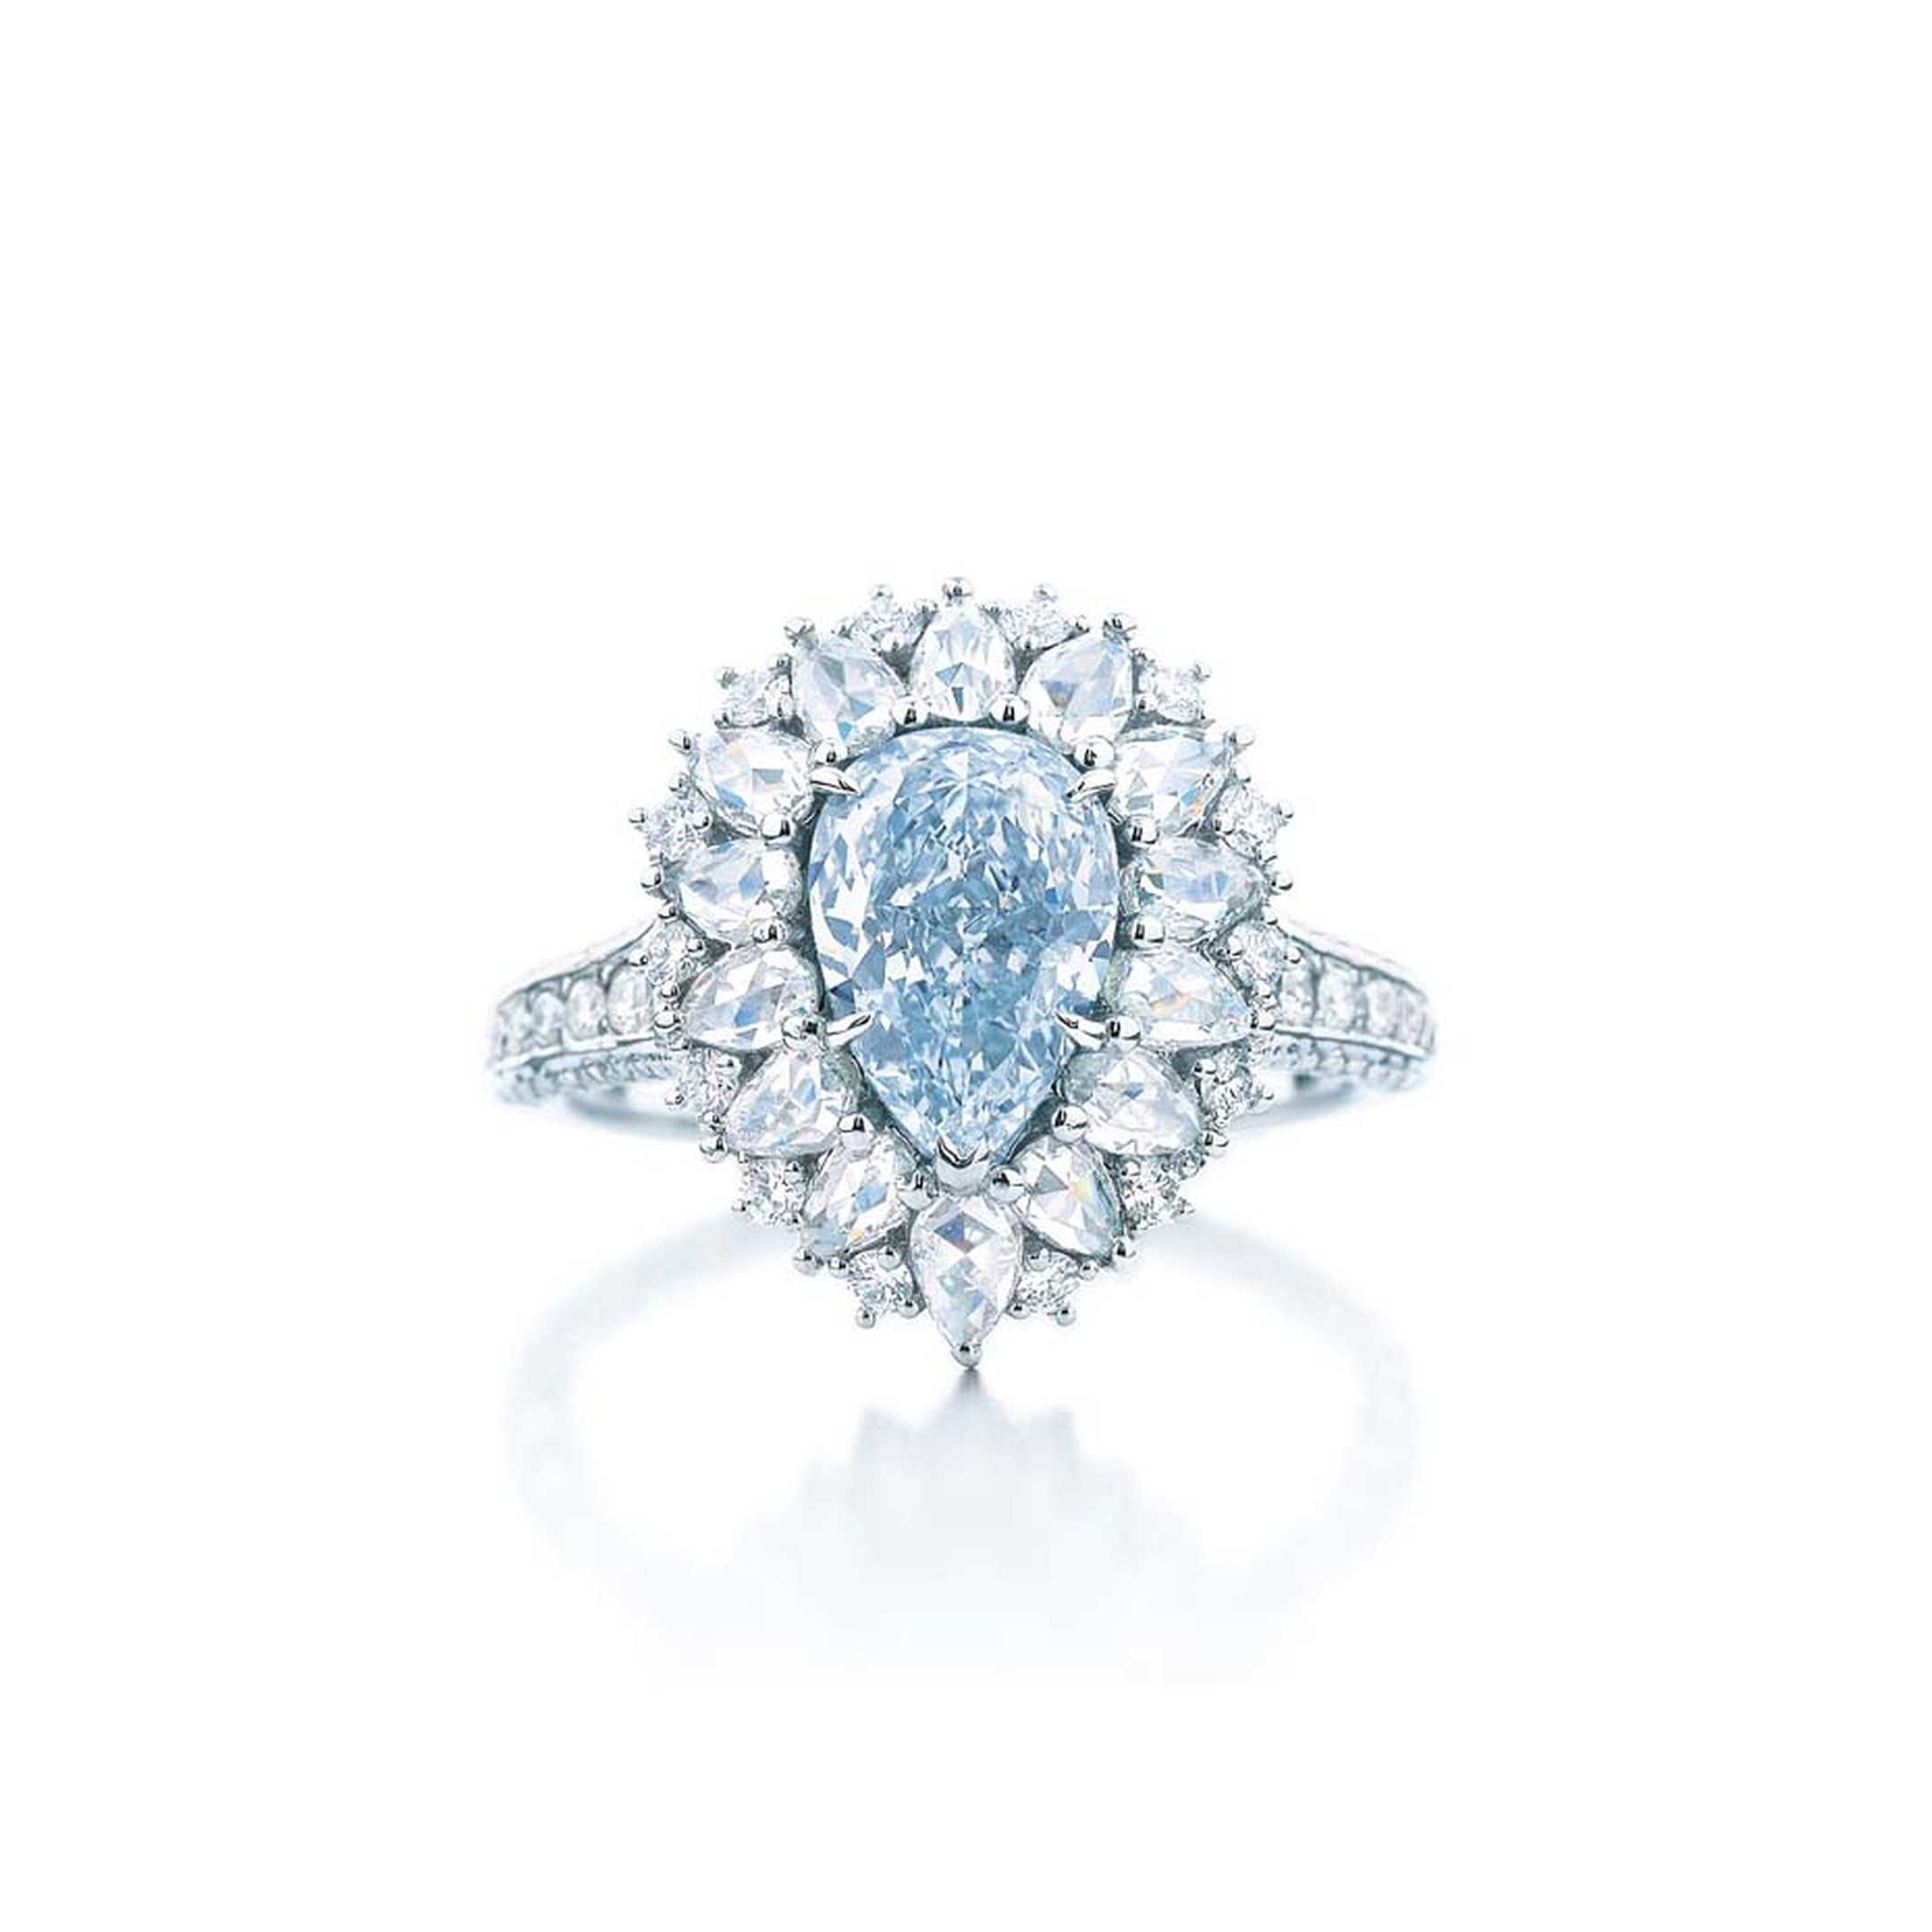 One-of-a-kind Tiffany & Co. pear-shape blue diamond ring from the 2014 Blue Book Collection.